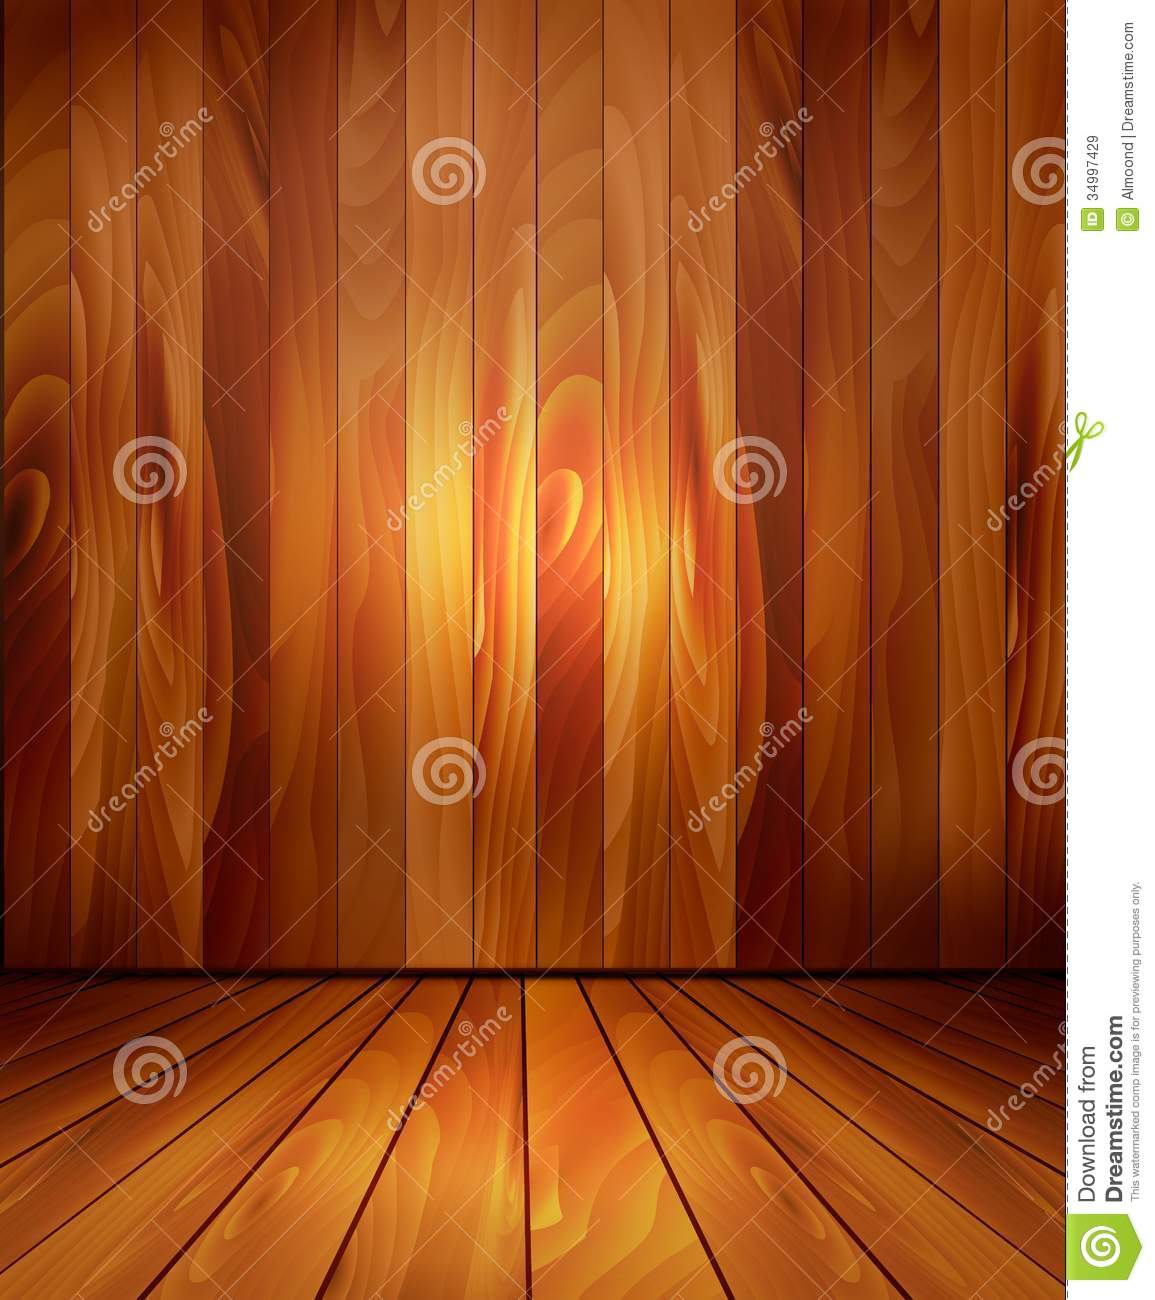 Background With Wooden Wall And A Wooden Floor Stock